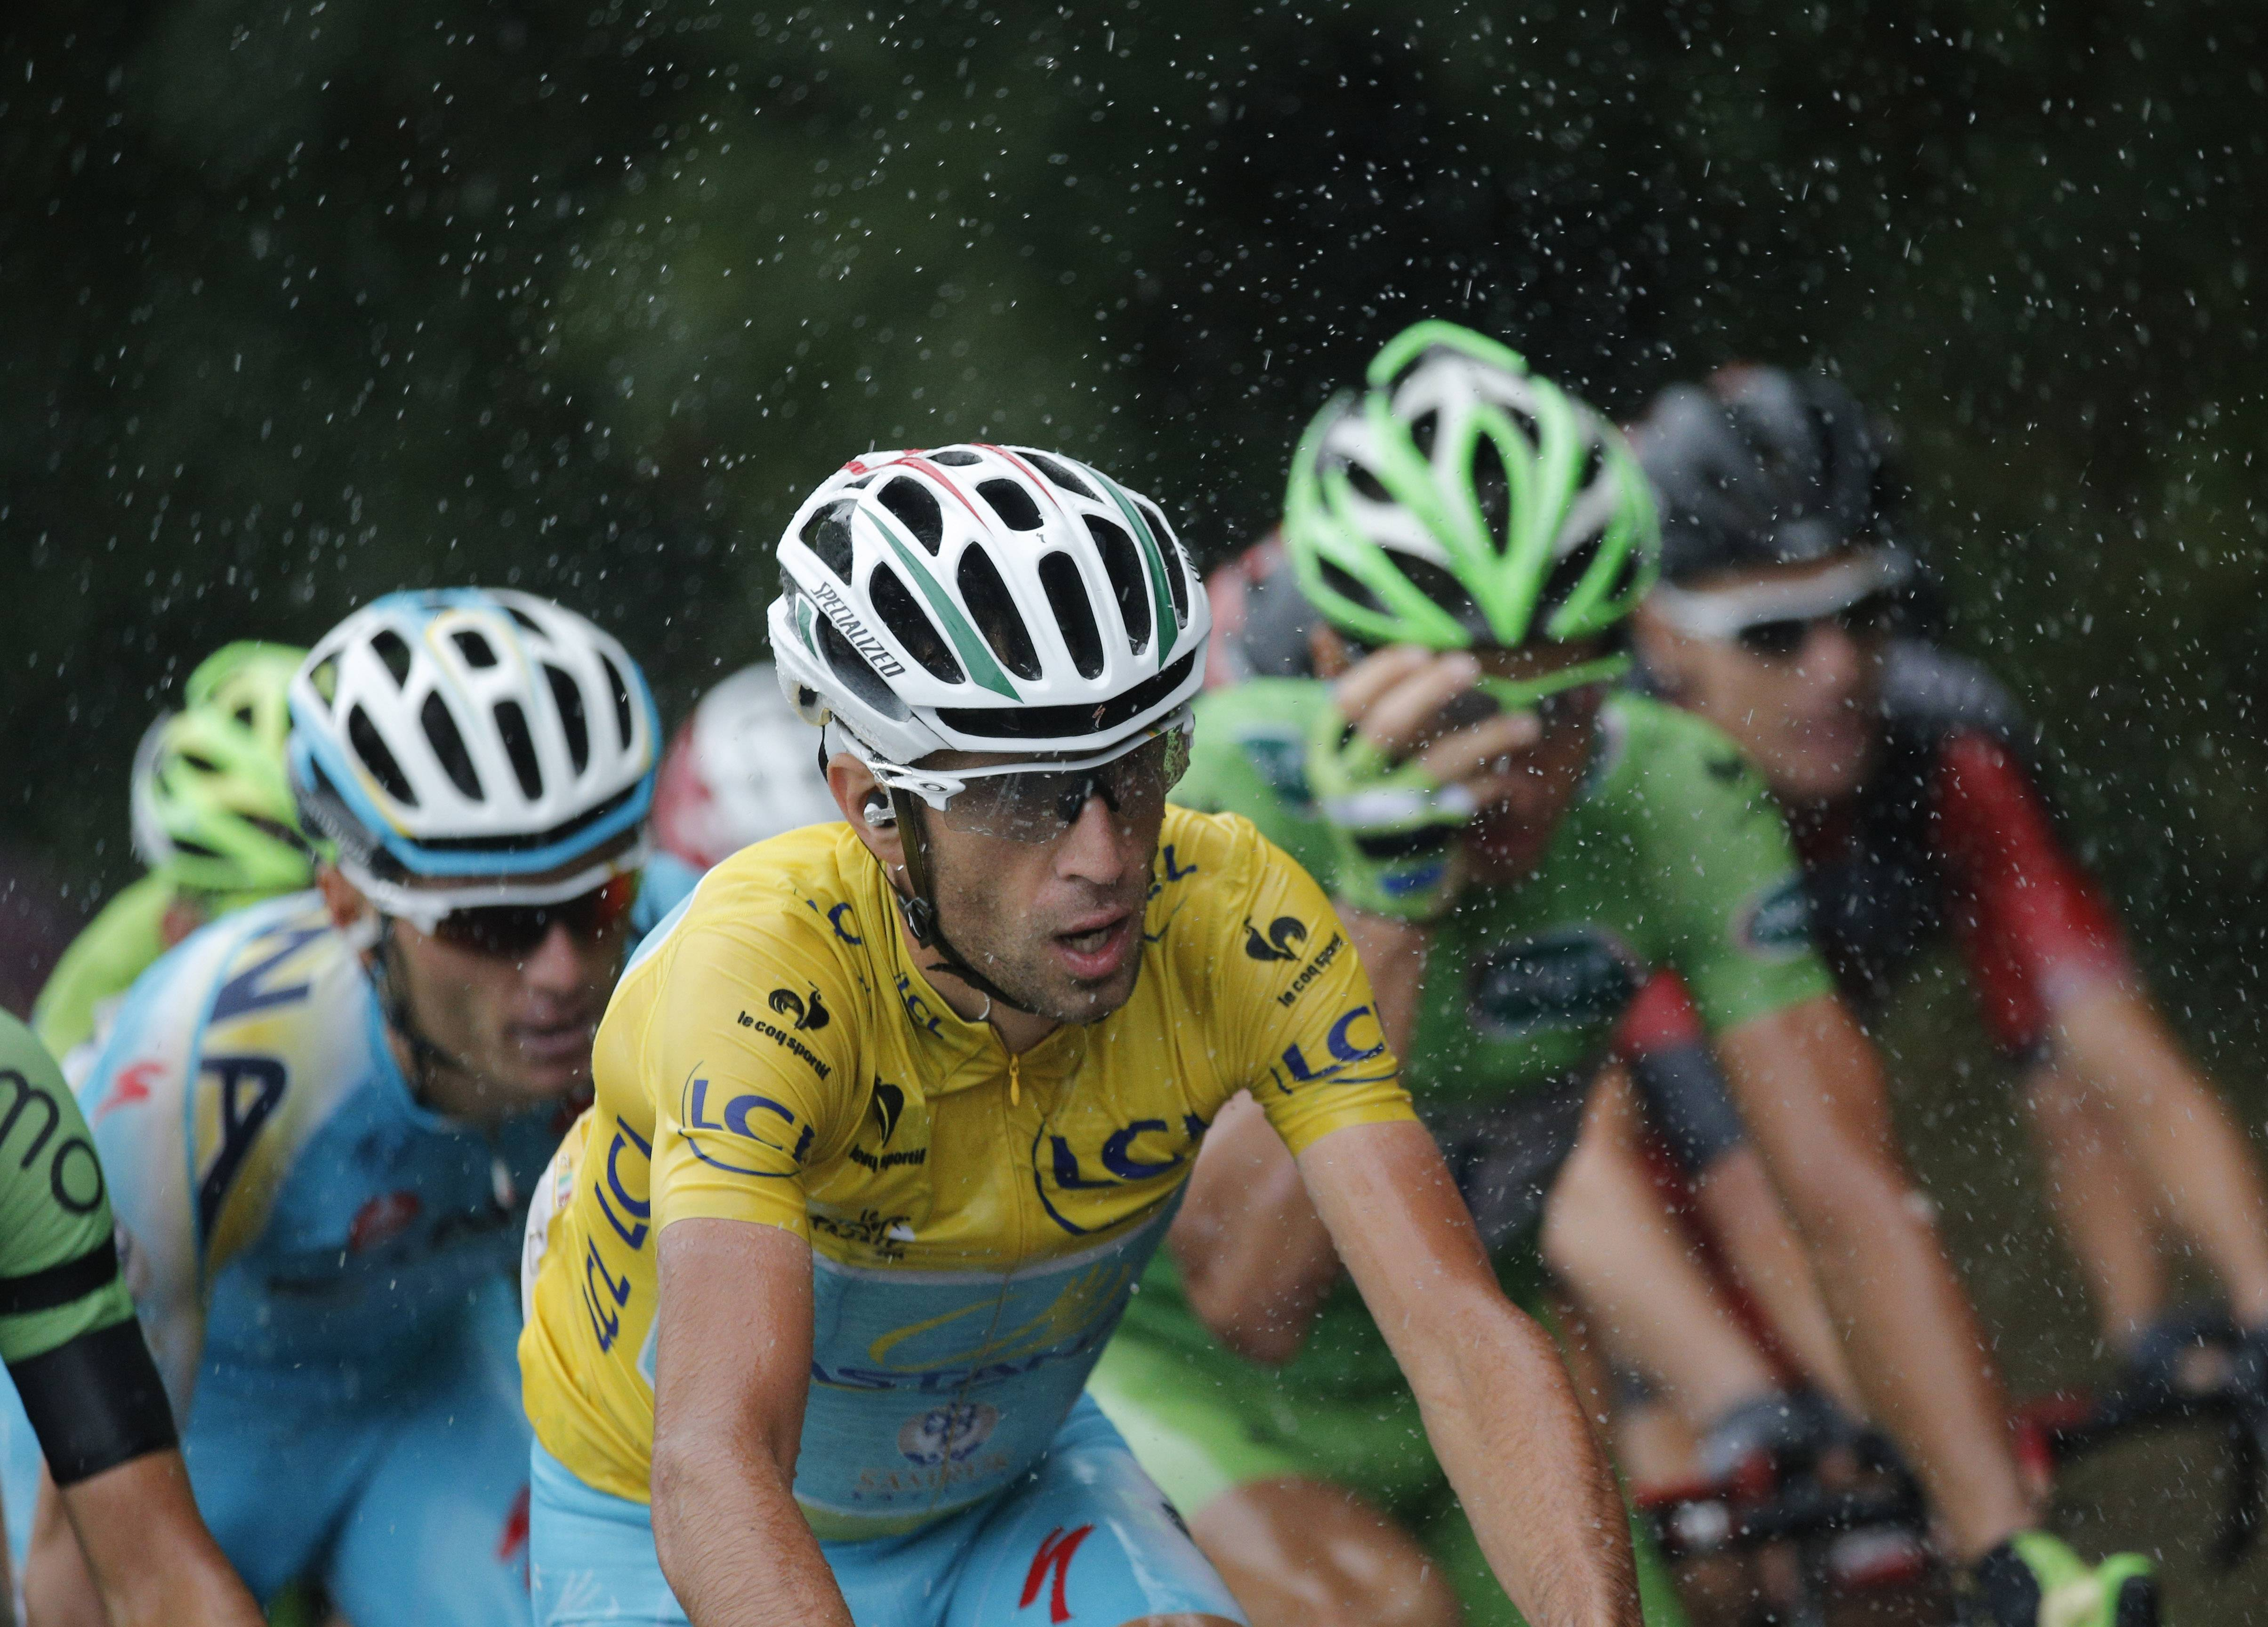 Italy's Vincenzo Nibali, wearing the overall leader's yellow jersey, rides in the rain during the nineteenth stage of the Tour de France cycling race over 208.5 kilometers (129.6 miles) with start in Maubourguet and finish in Bergerac, France, Friday, July 25, 2014.